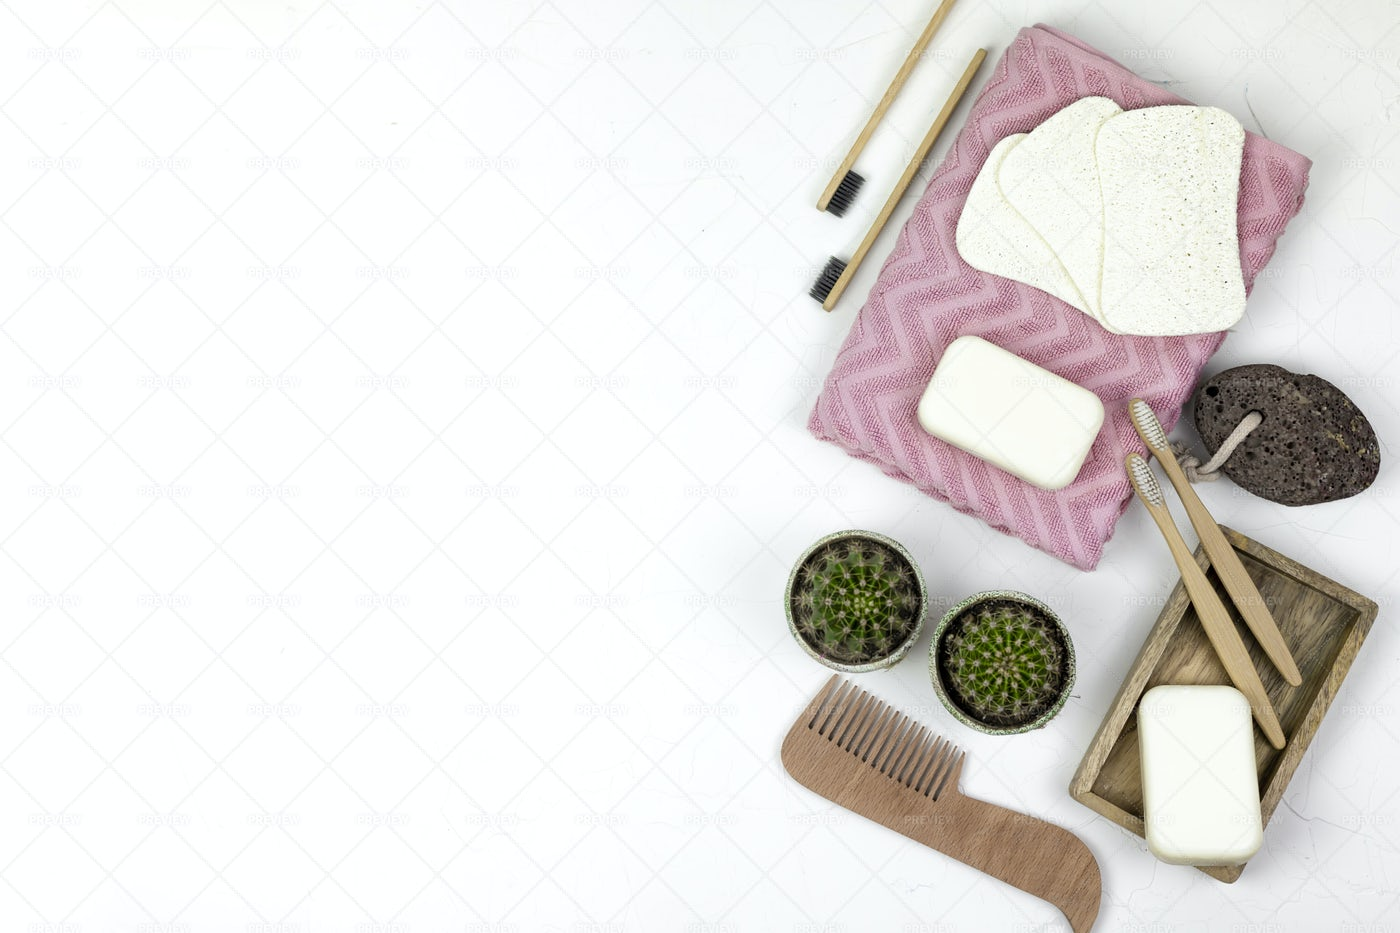 Sustainable Bathroom Products: Stock Photos